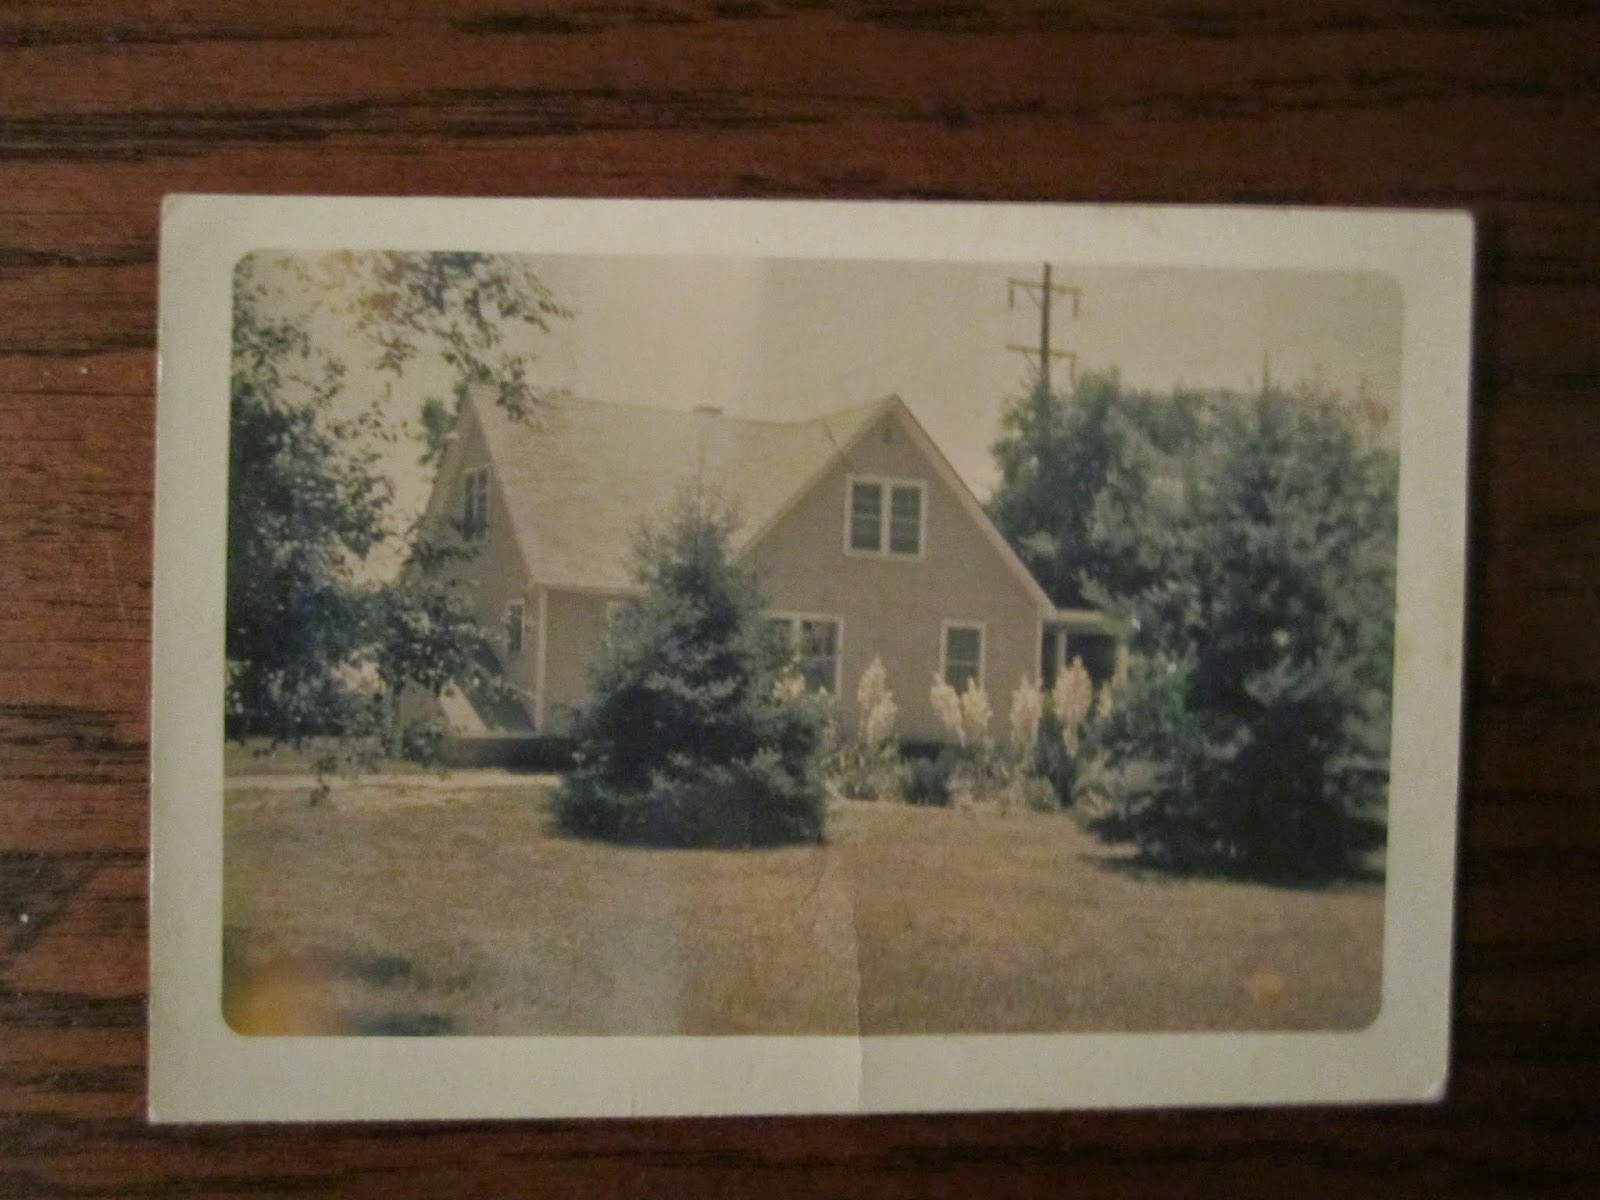 Climbing My Family Tree: My Grandpa built this house! on Olt Rd Extension in Jefferson twp, Montgomery cty OH